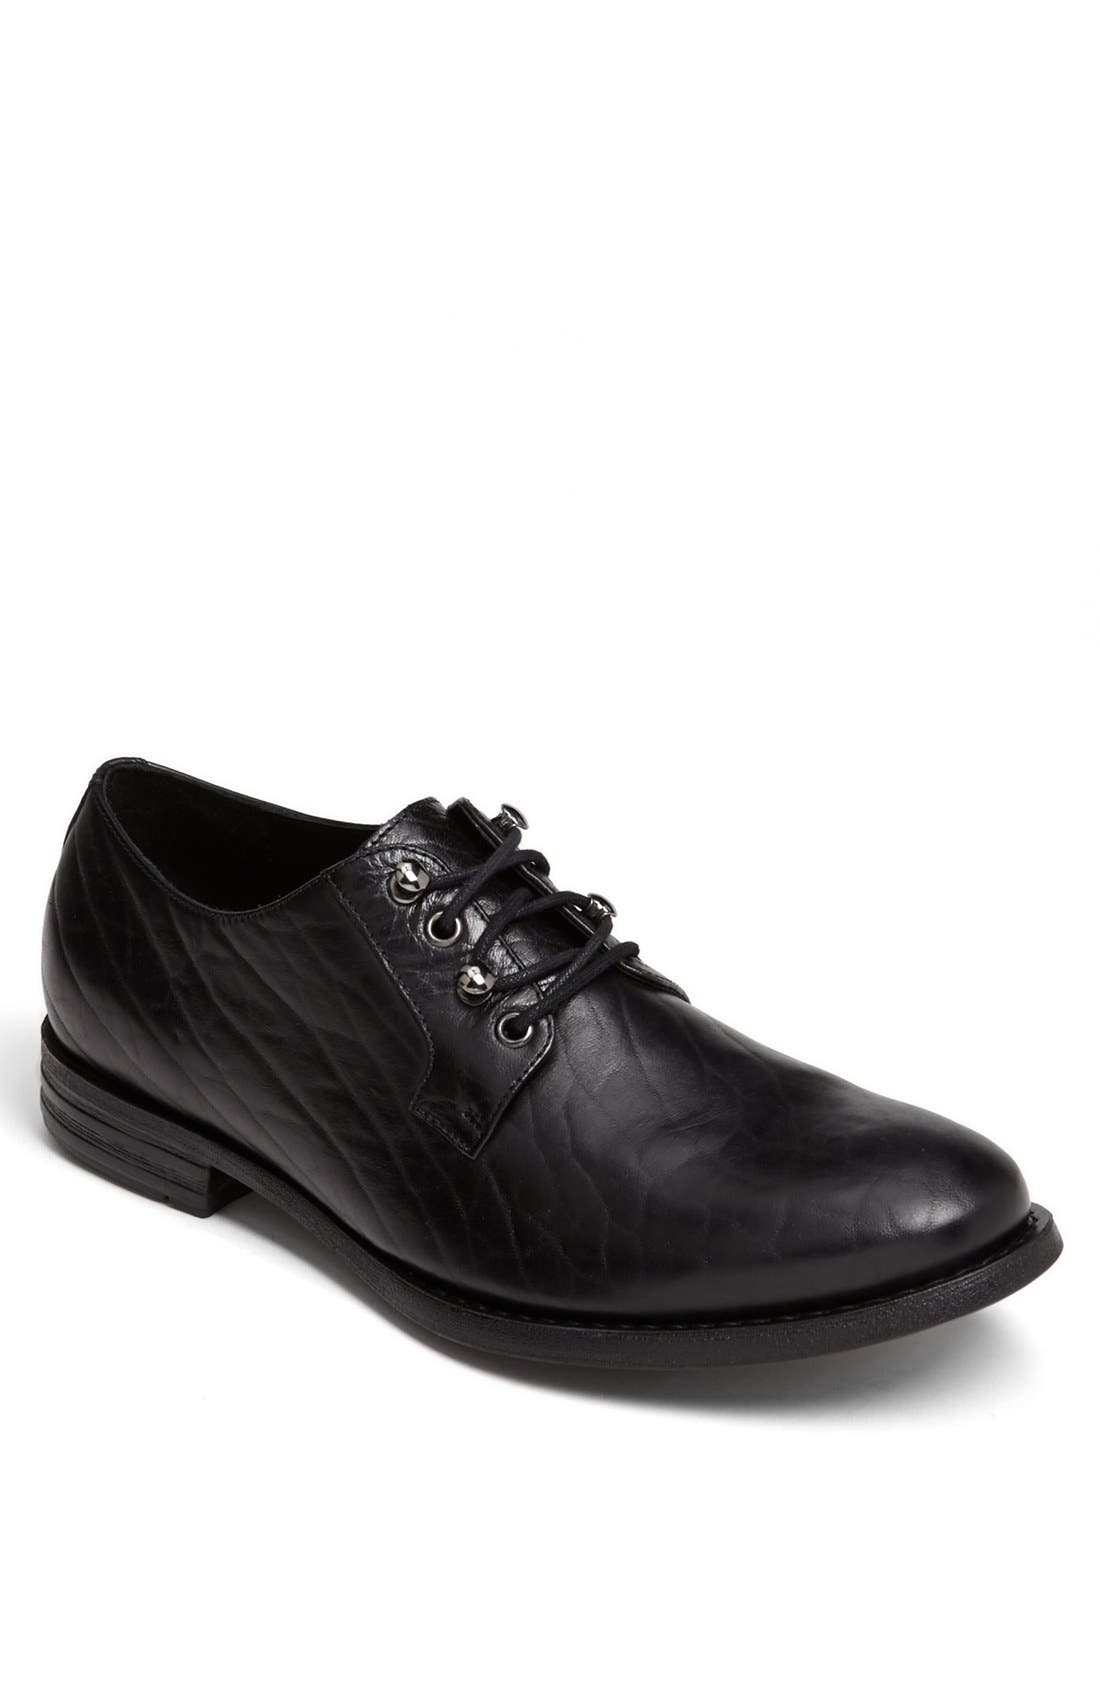 Alternate Image 1 Selected - McQ by Alexander McQueen Calfskin Derby